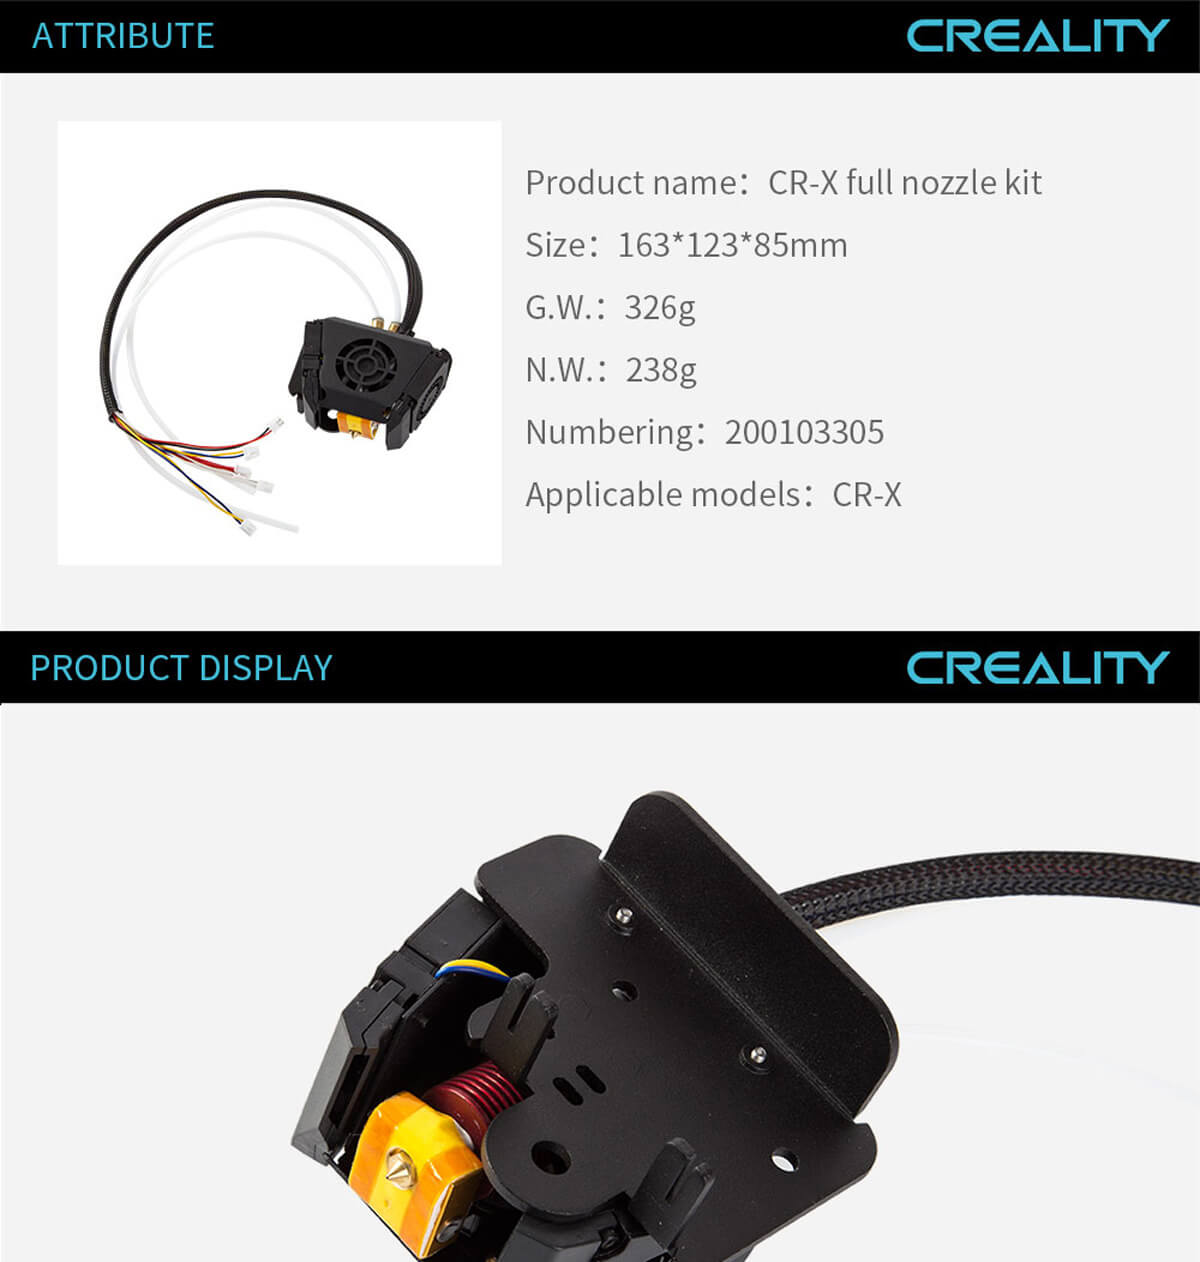 creality-3d-printer-CR-X-Full-Nozzle-Kit-11